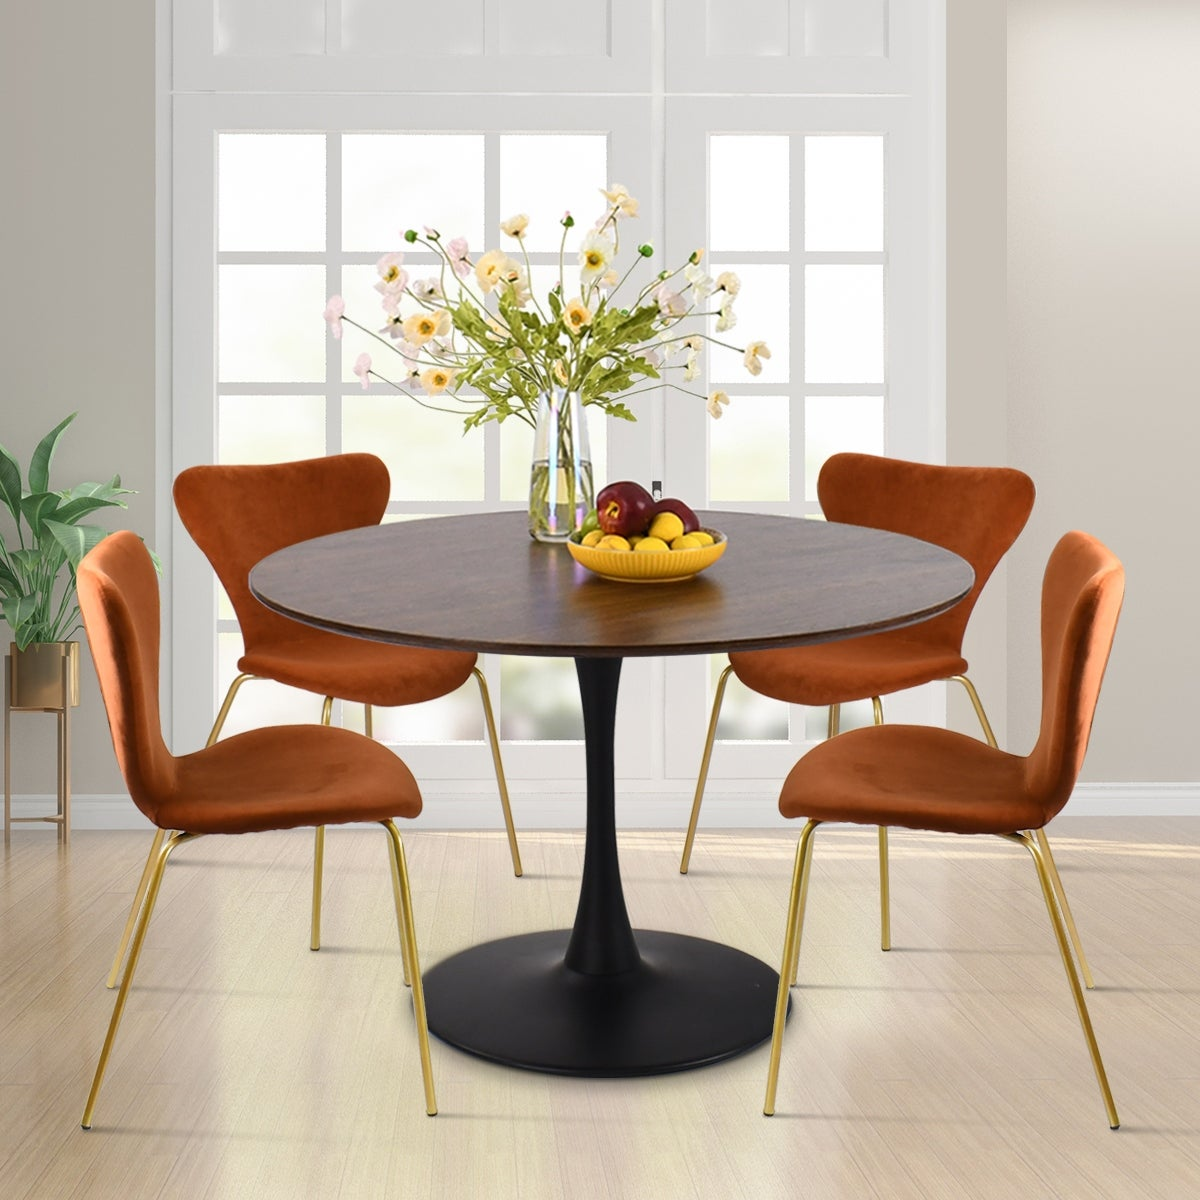 5 Piece Dining Set With Velvet Chair And Dining Table Overstock 32279530